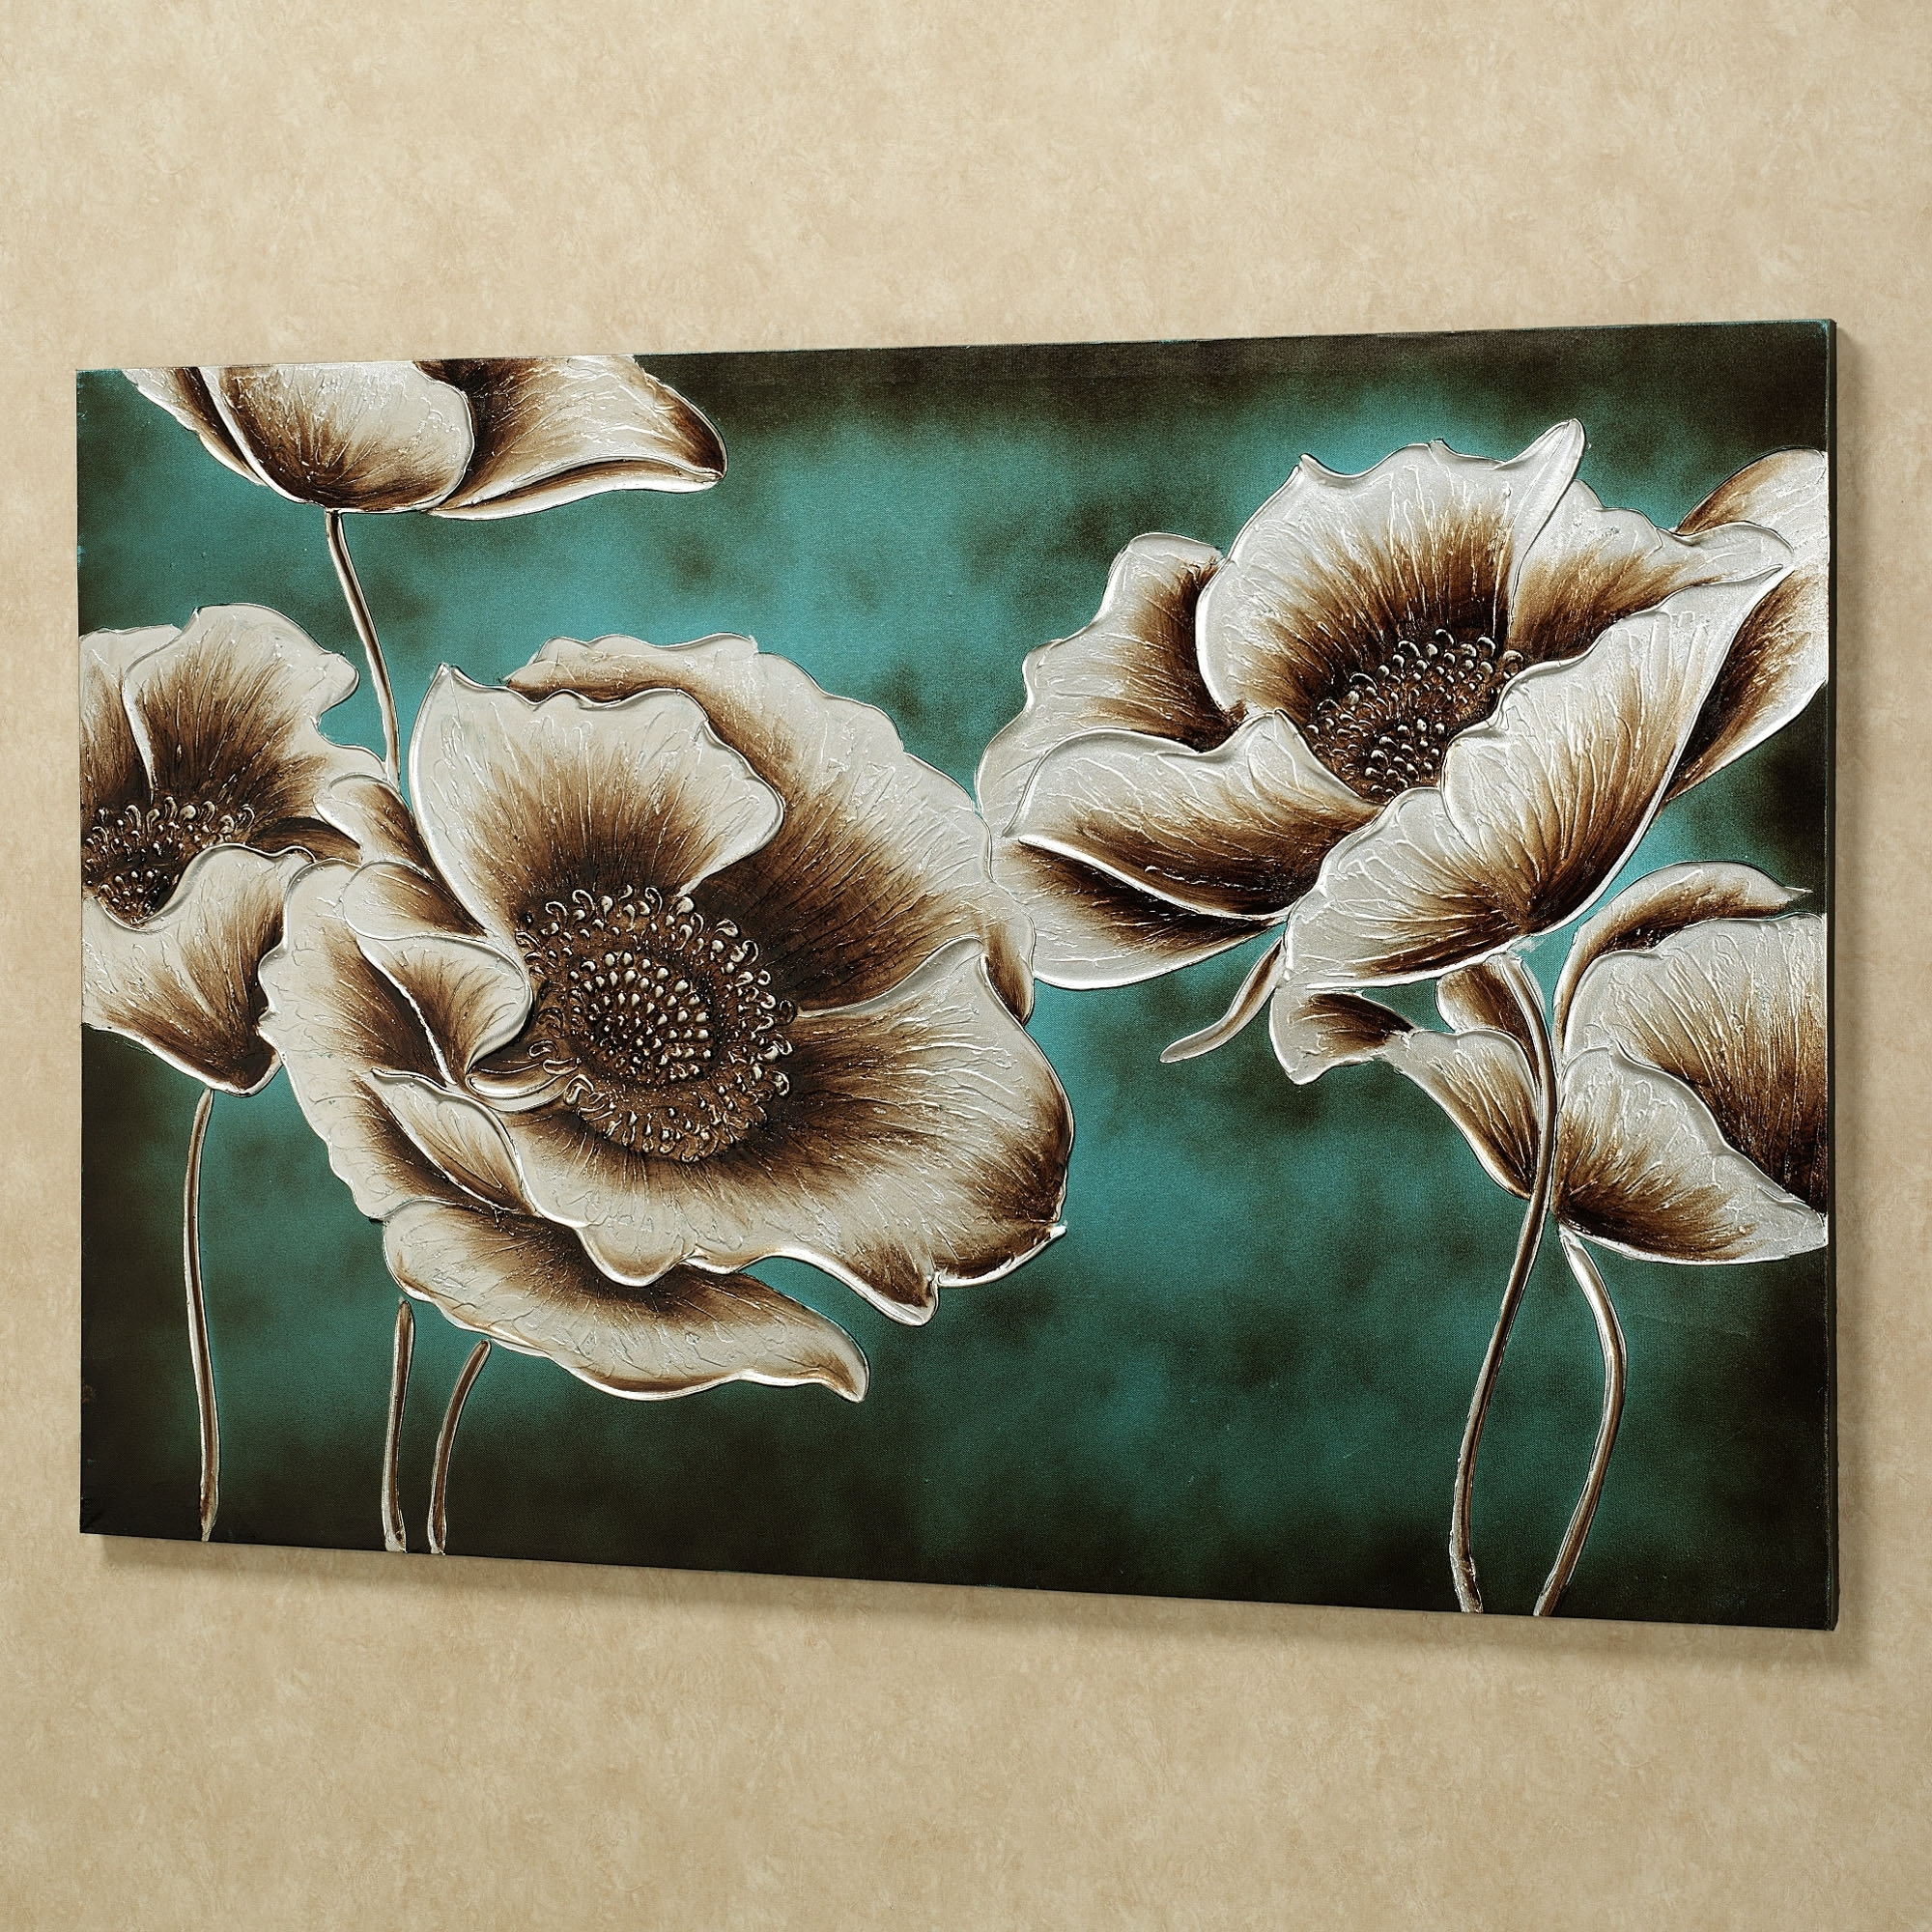 Preferred Teal Flower Canvas Wall Art With Jardin De Pavot Poppy Flower Canvas Wall Art (View 10 of 15)